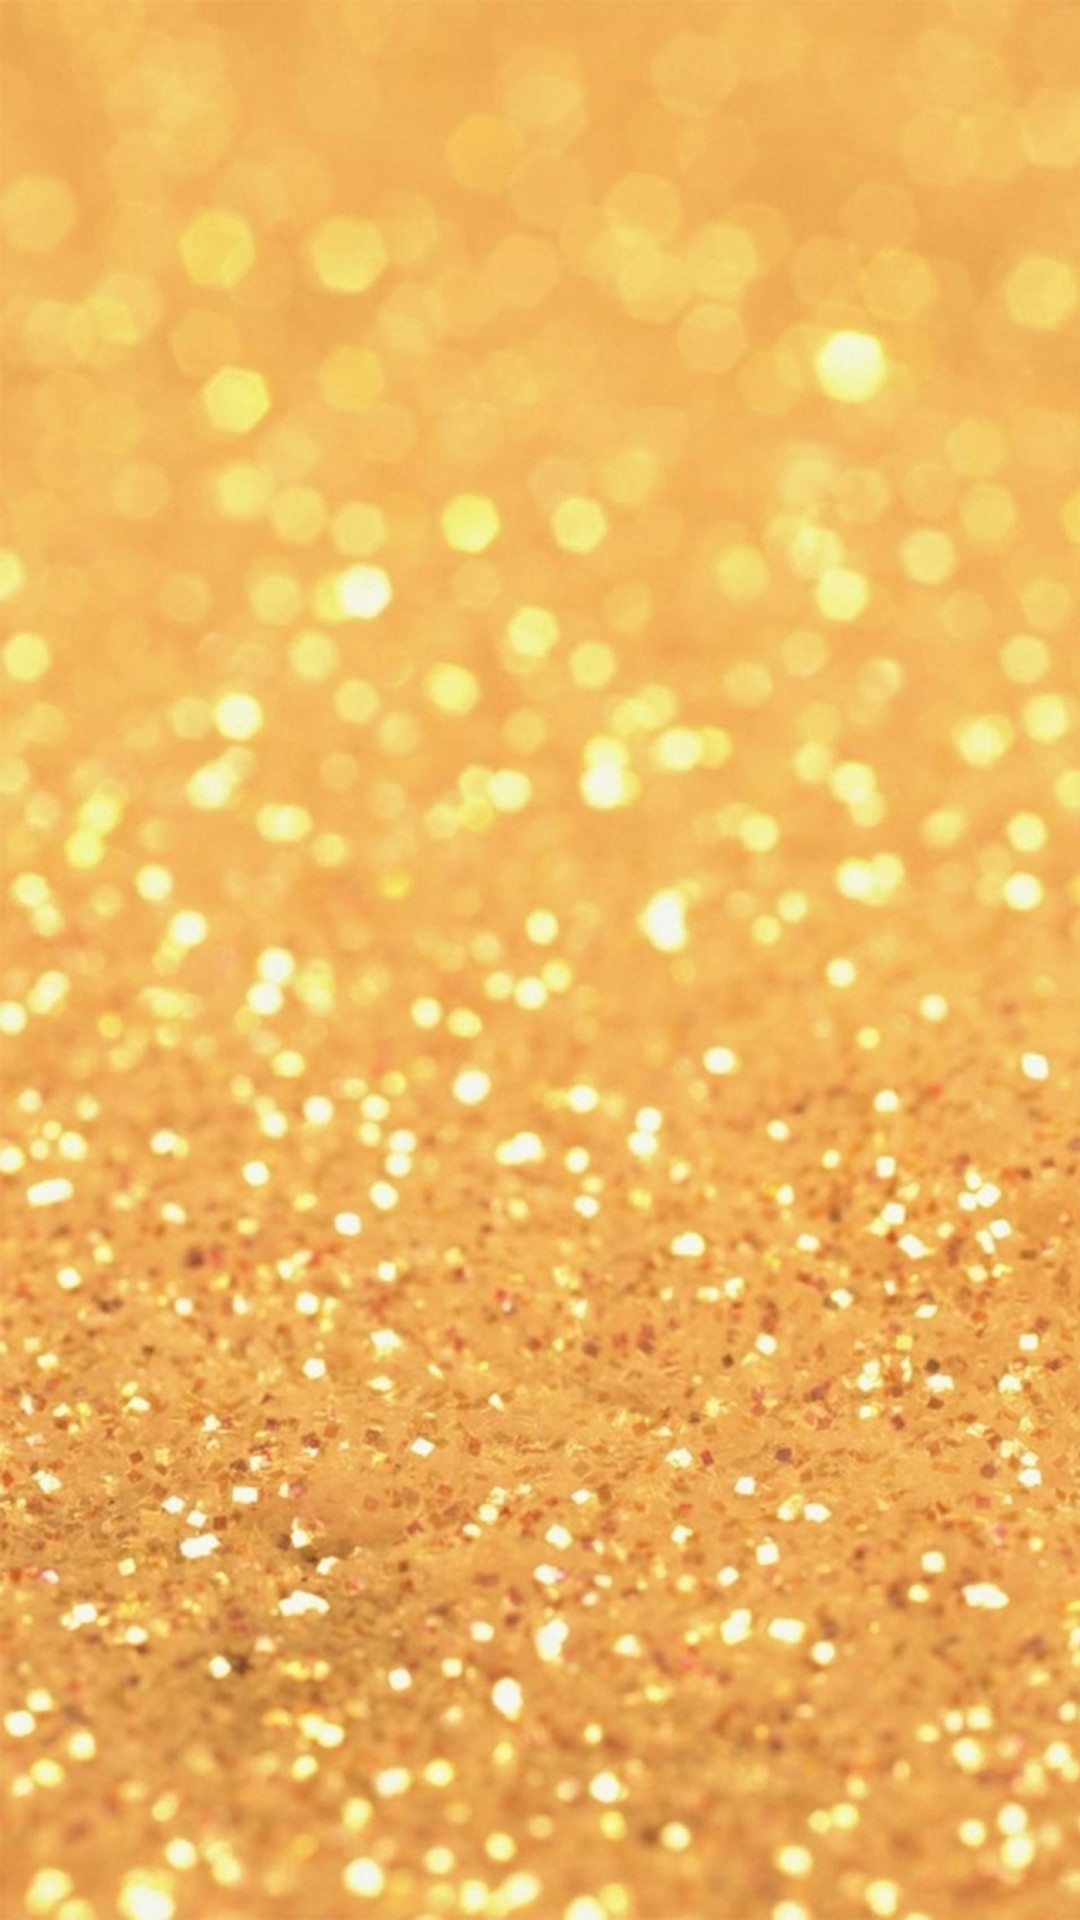 Iphone 6 Gold Wallpaper 86 Images